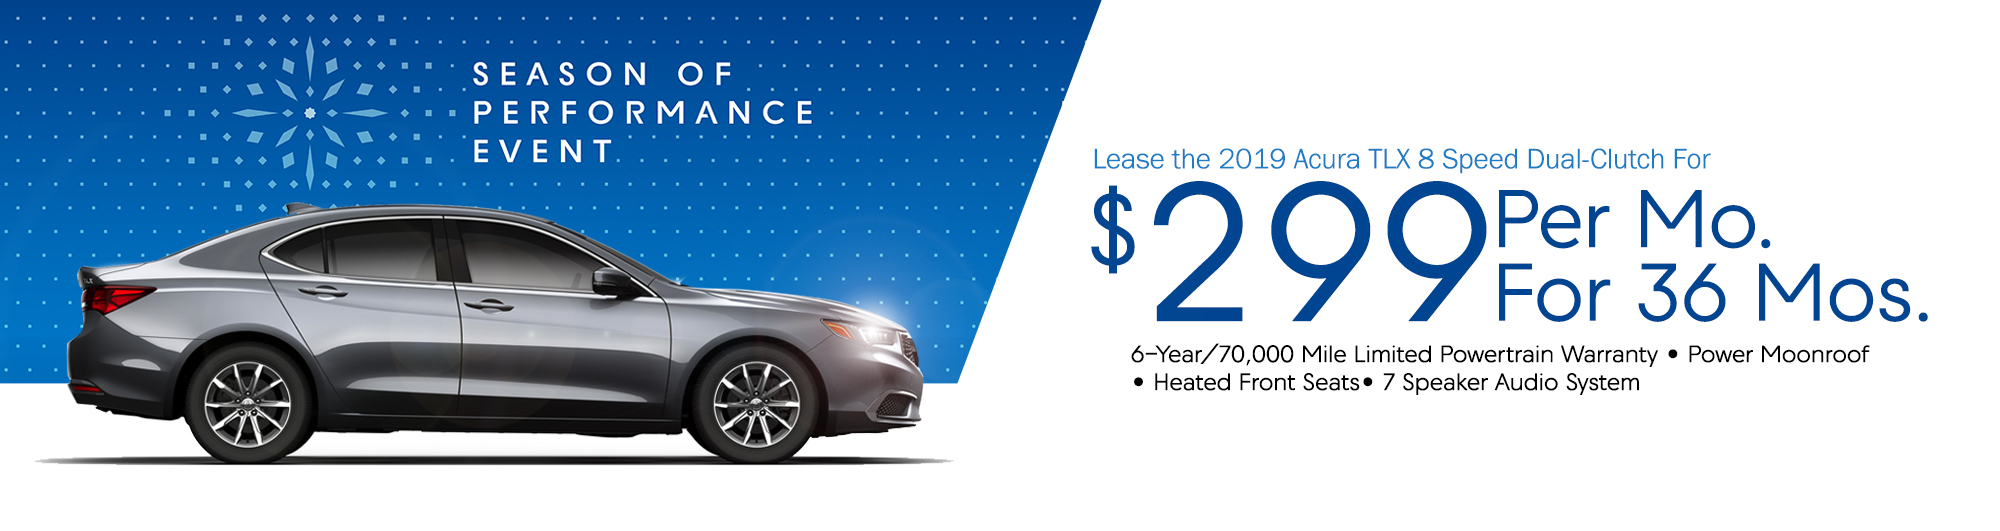 Lease the 2019 Acura TLX 8 Speed Dual-Clutch For $229 Per Month For 36 Months. Features: 6-Year/70,000 Mile Limited Powertrain Warranty • Power Moonroof • Heated Front Seats• 7 Speaker Audio System